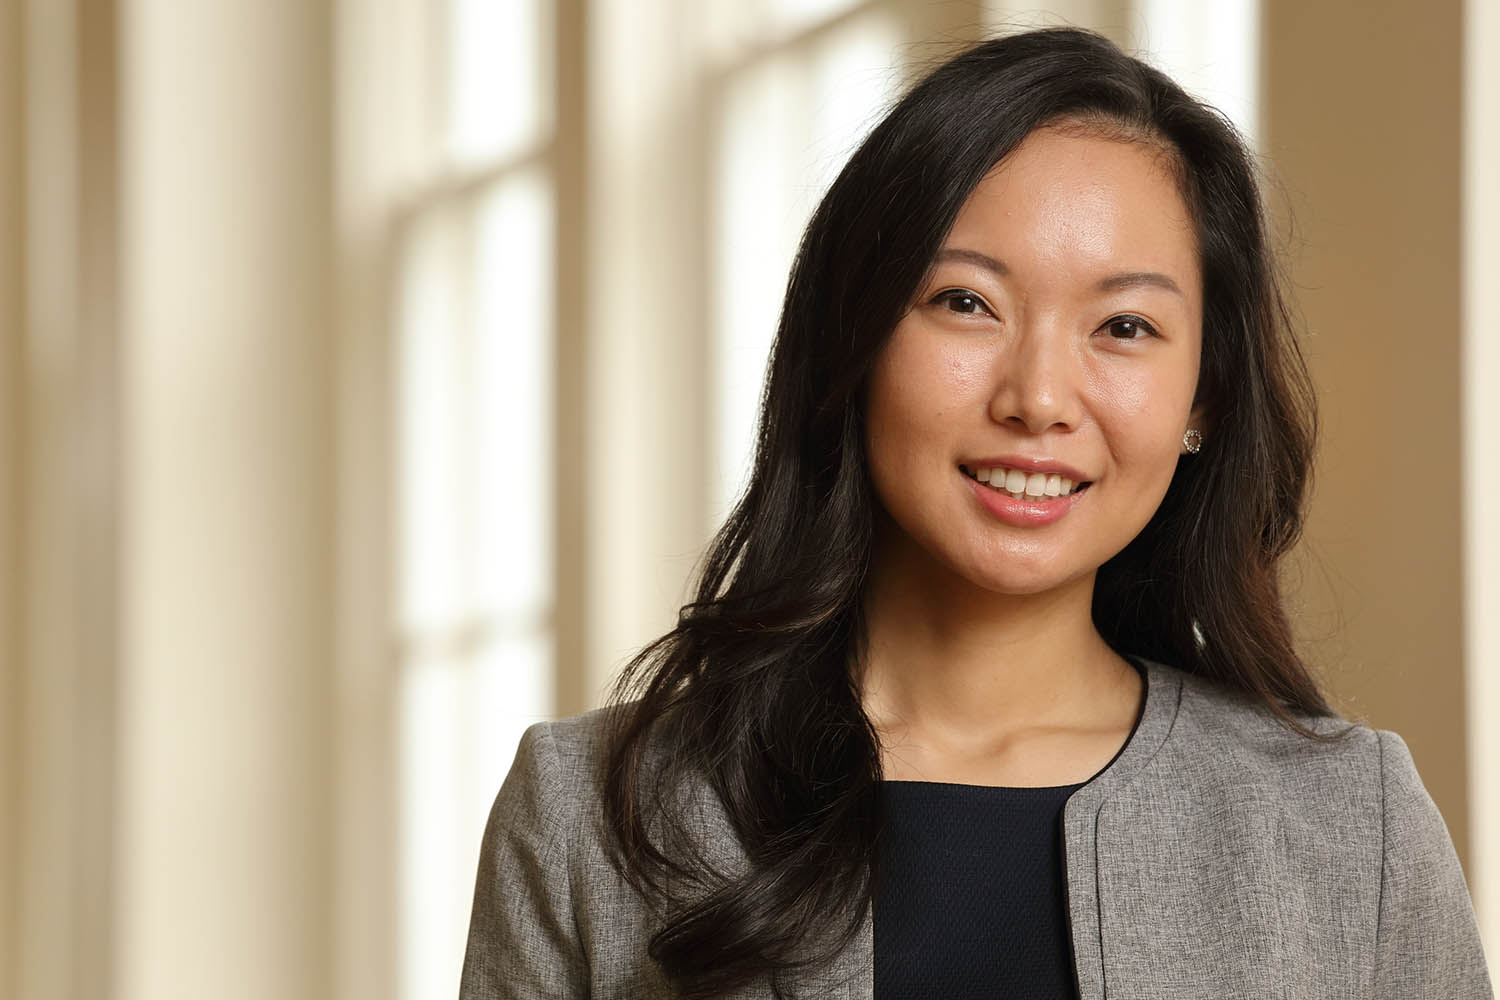 Tami Kim joined the Darden School of Business as an assistant professor of marketing last year. (